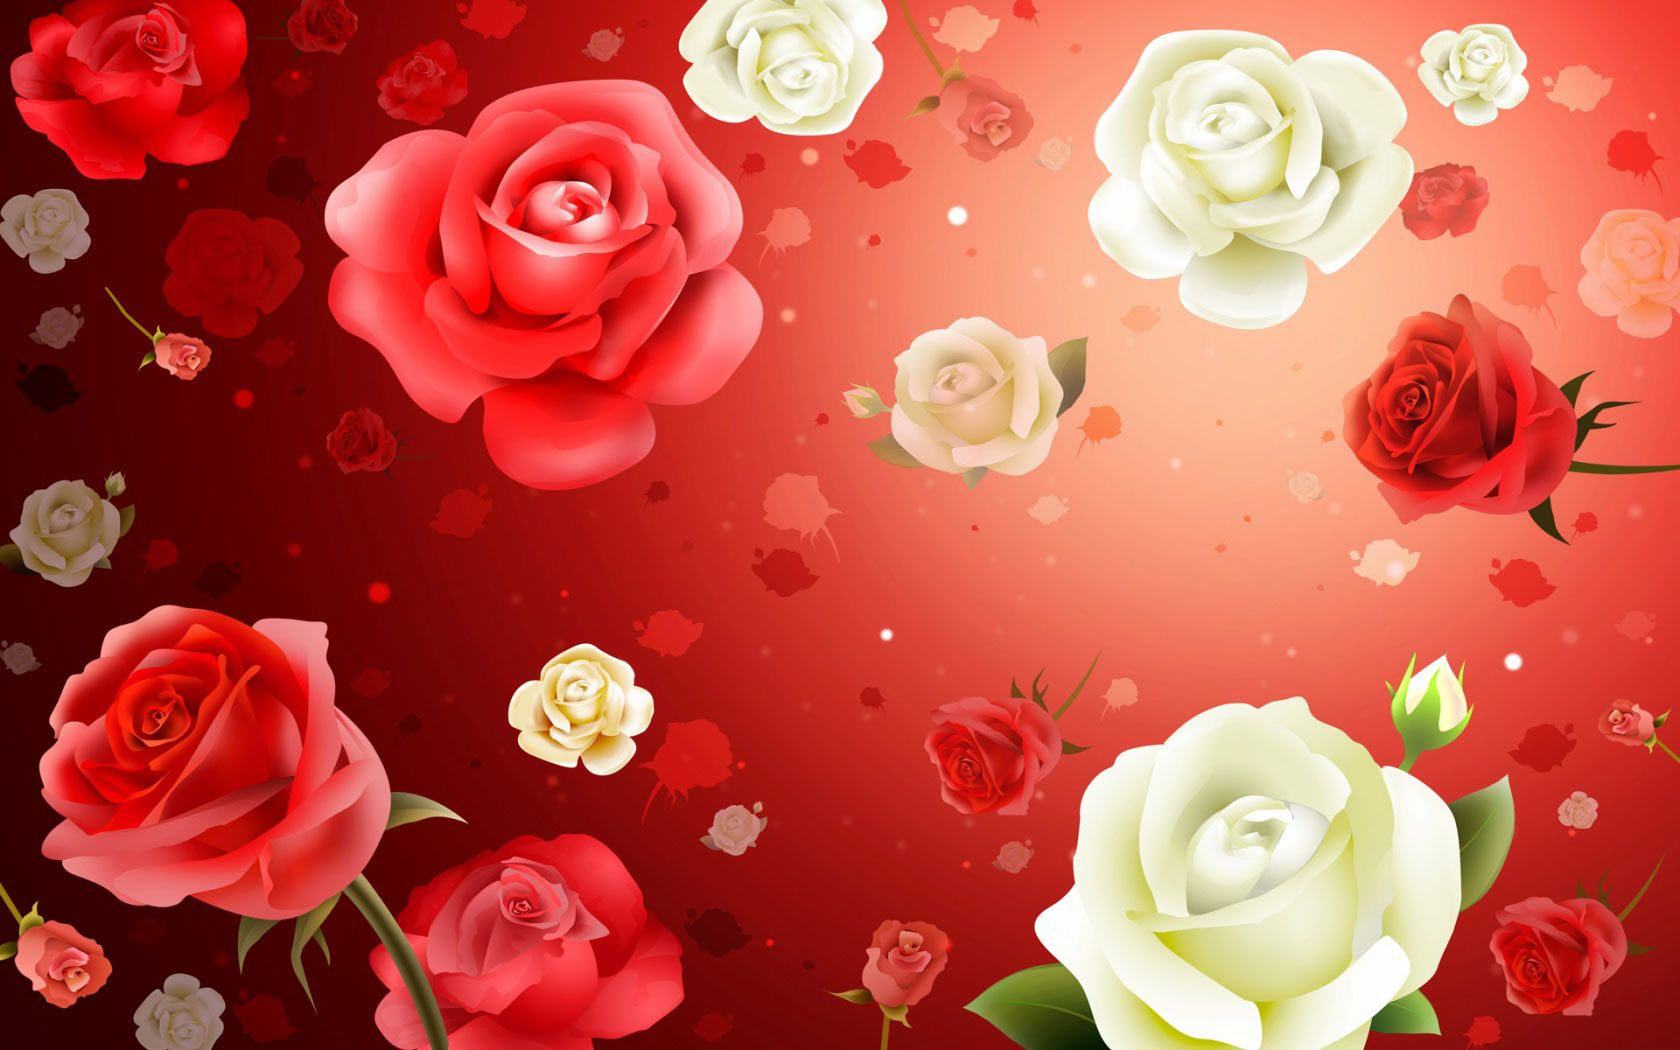 Roses Flowers Backgrounds Windows 7 Desktop Wallpaper High Quality Wallpapers Wallpaper Des Beautiful Flowers Wallpapers Rose Flower Hd Rose Flower Wallpaper